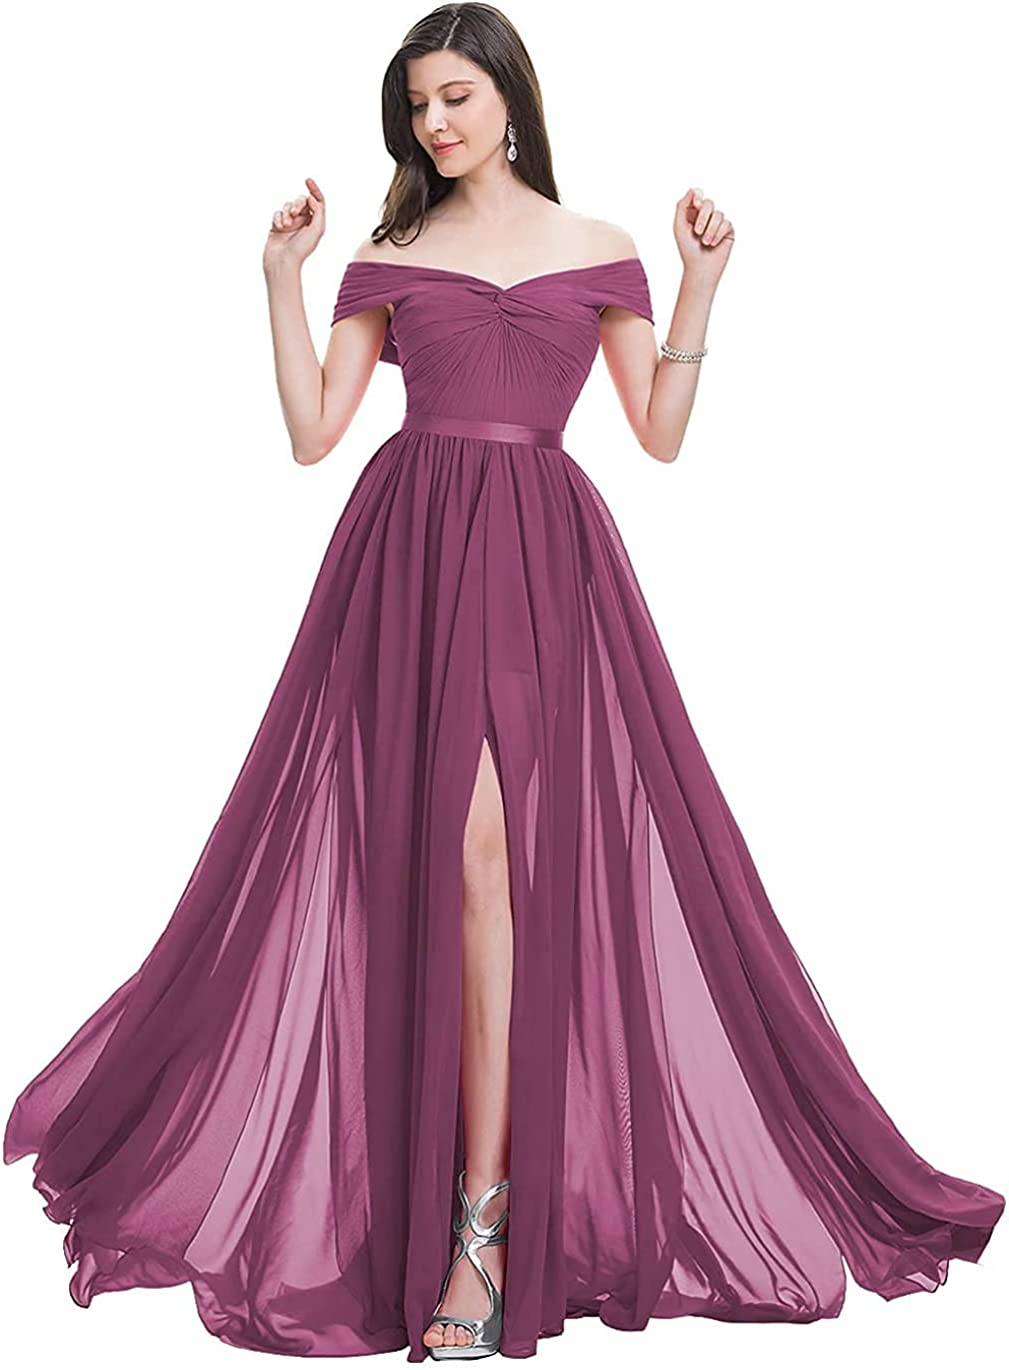 Women's Bridesmaid Dresses for Wedding Off The Shoulder Formal Party Chiffon Evening Gowns Long Prom Dress with Slit